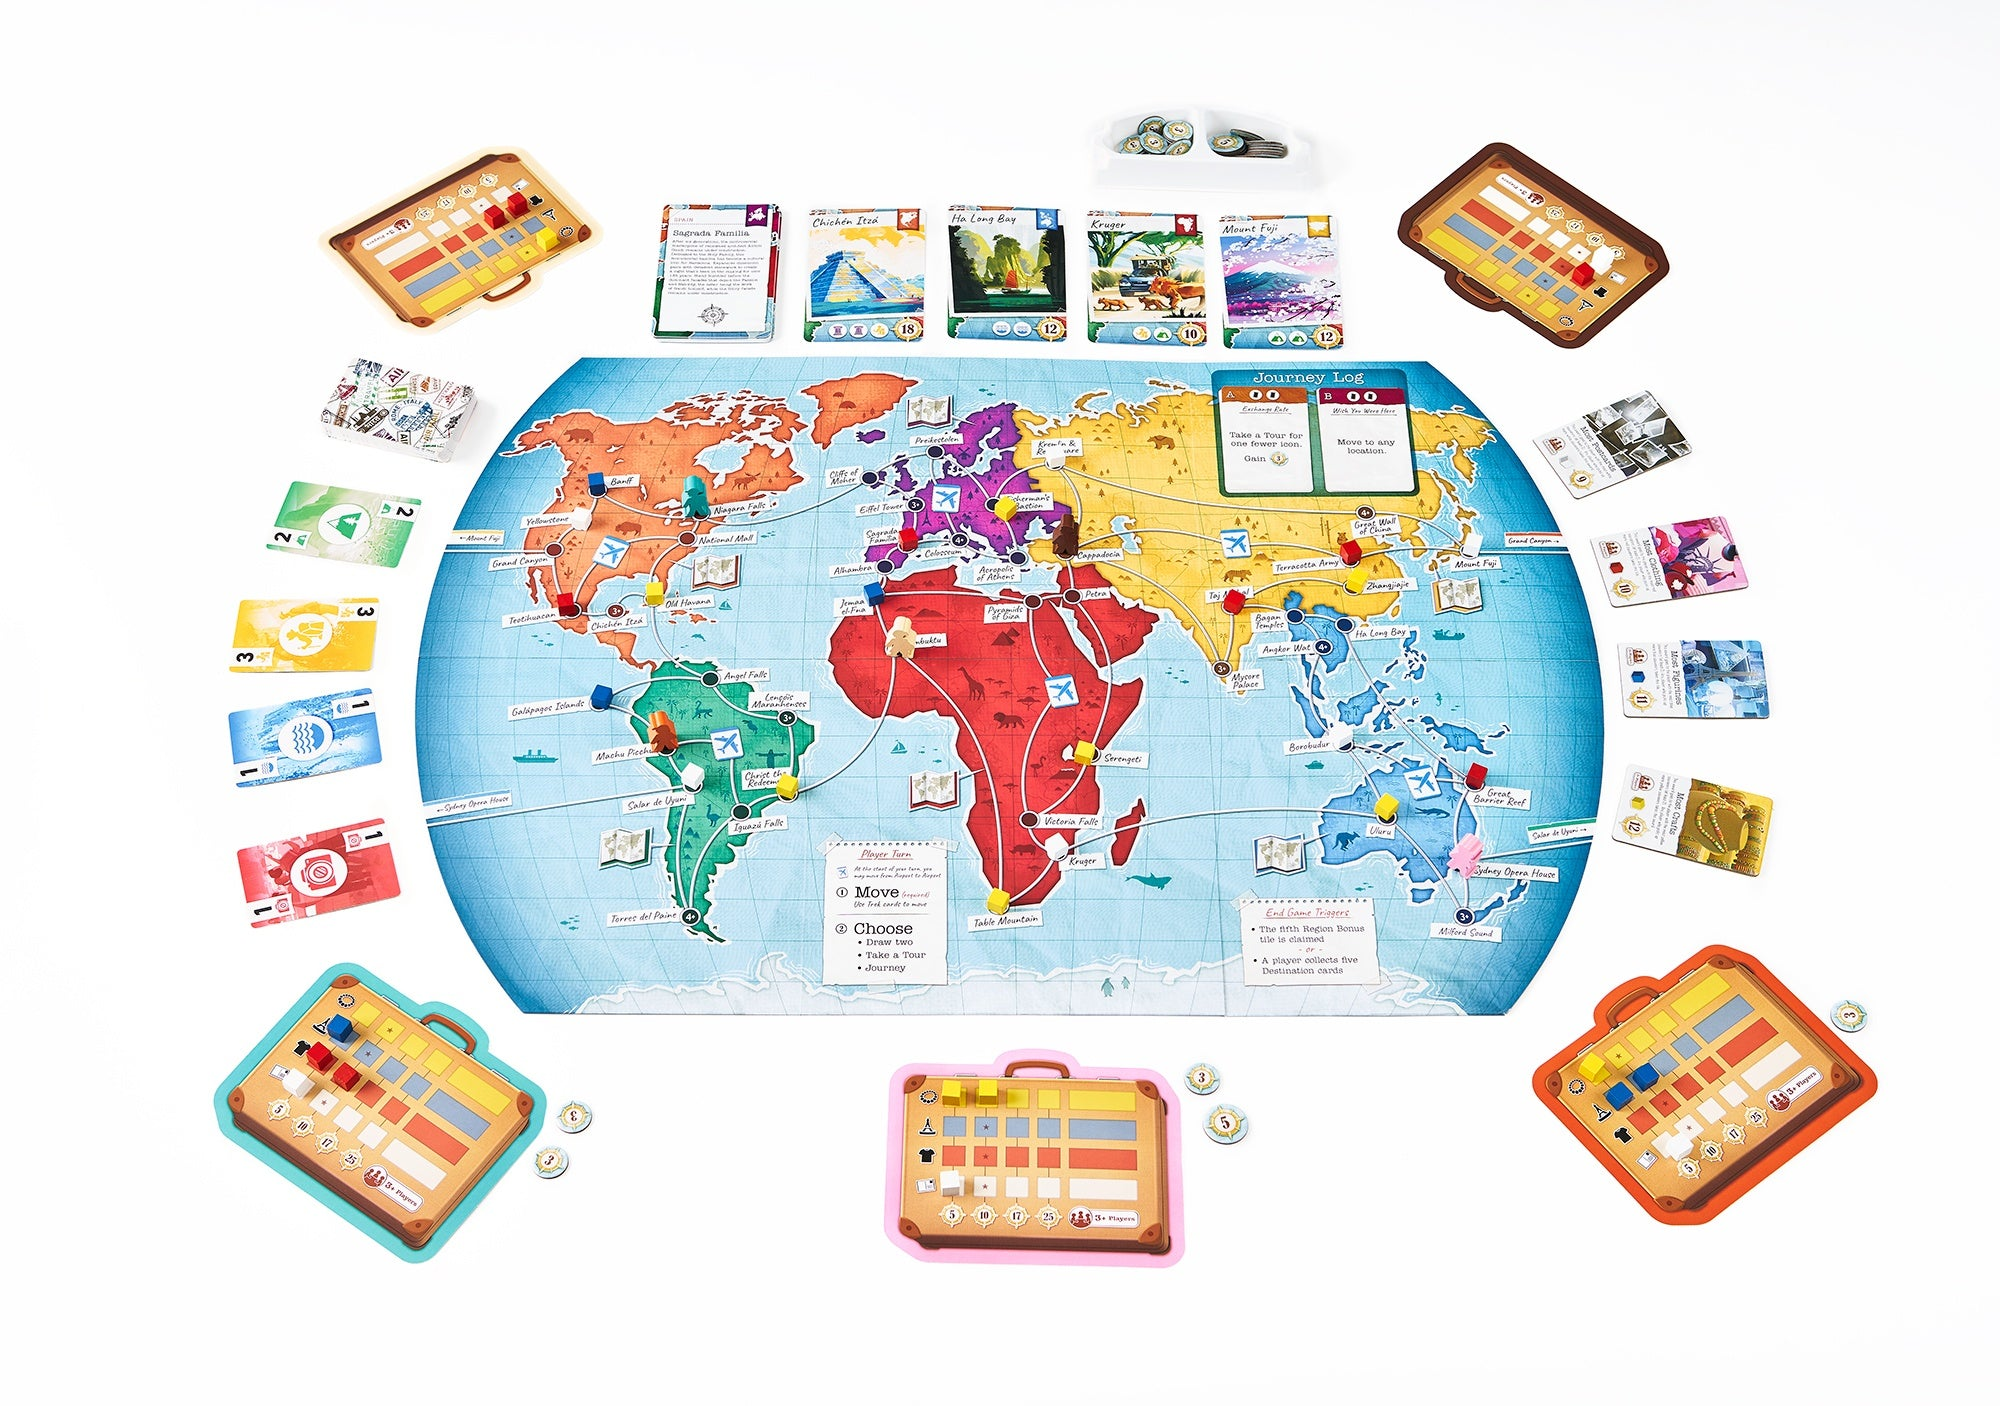 board game image